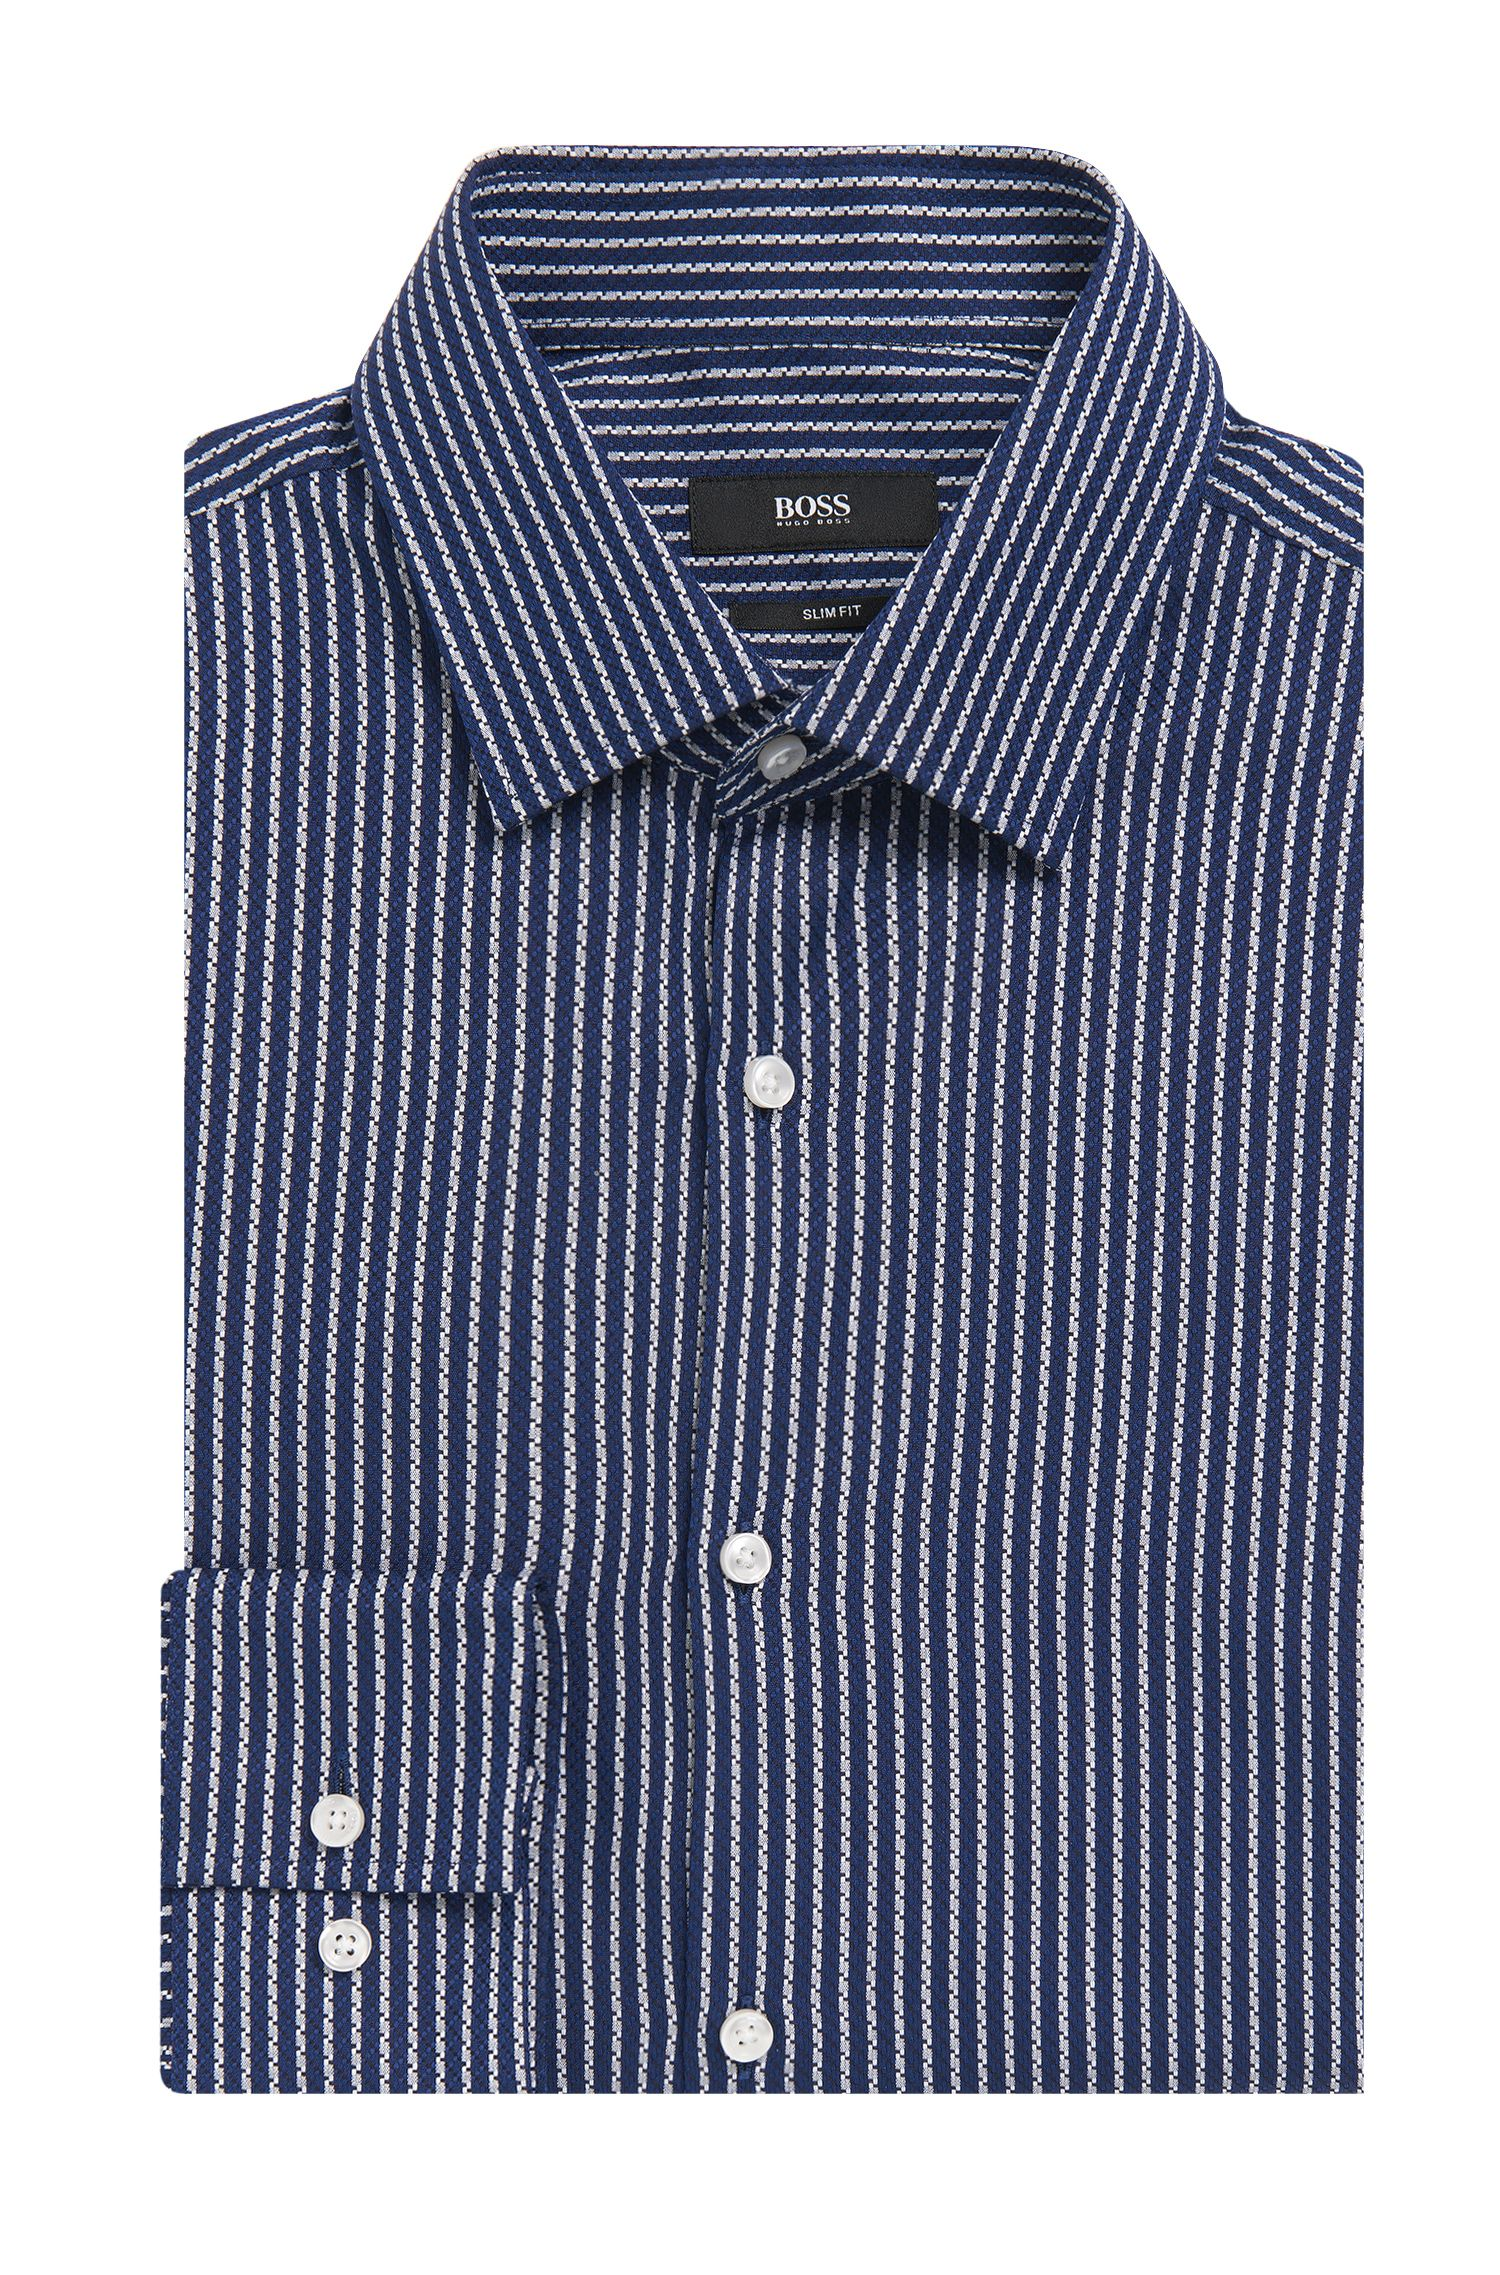 'Jenno' | Slim Fit, Italian Cotton Dress Shirt